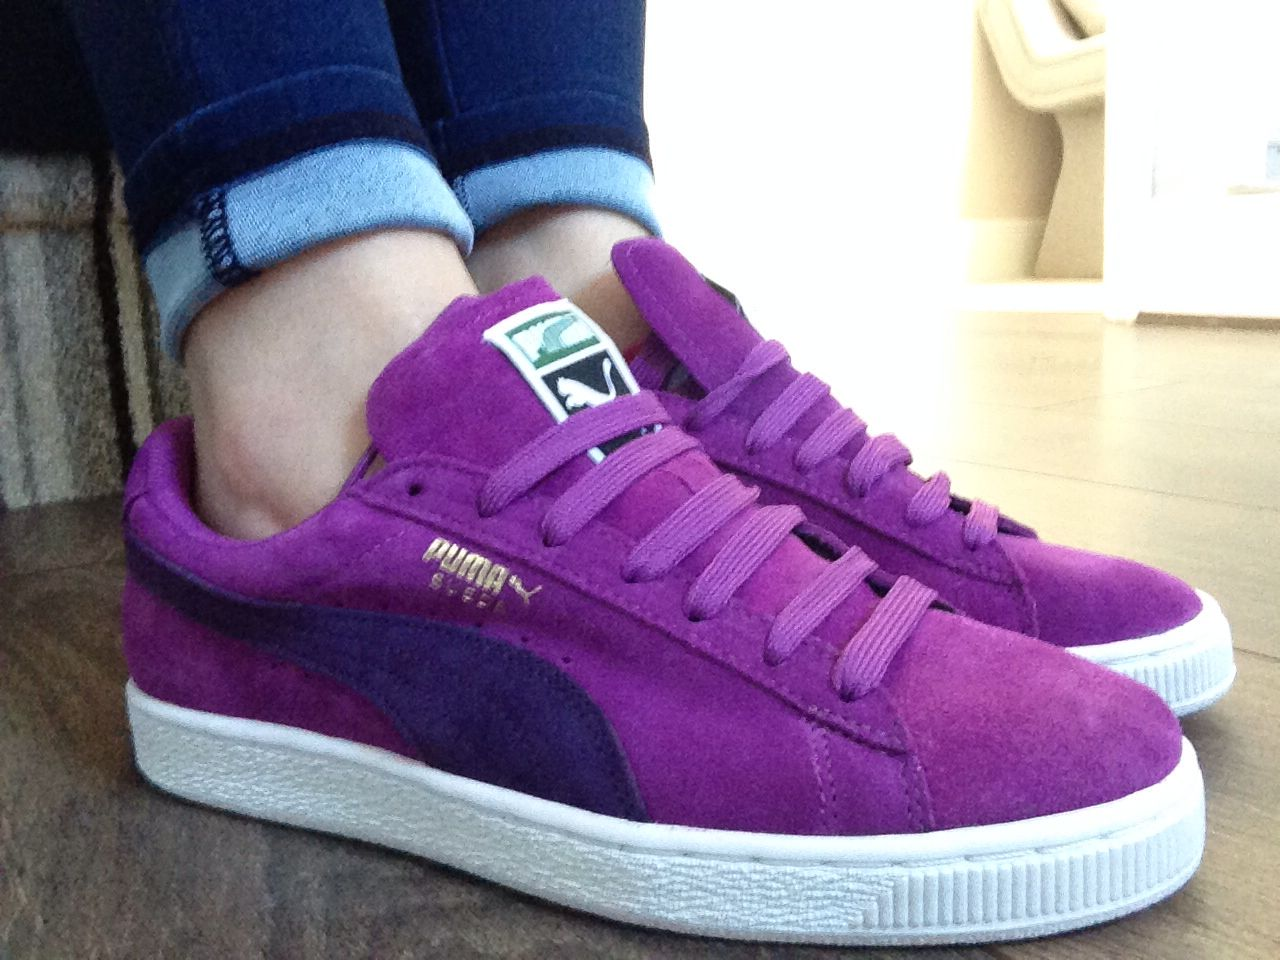 best service d9e79 65f47 Purple puma suede | Products I Love in 2019 | Pumas shoes ...